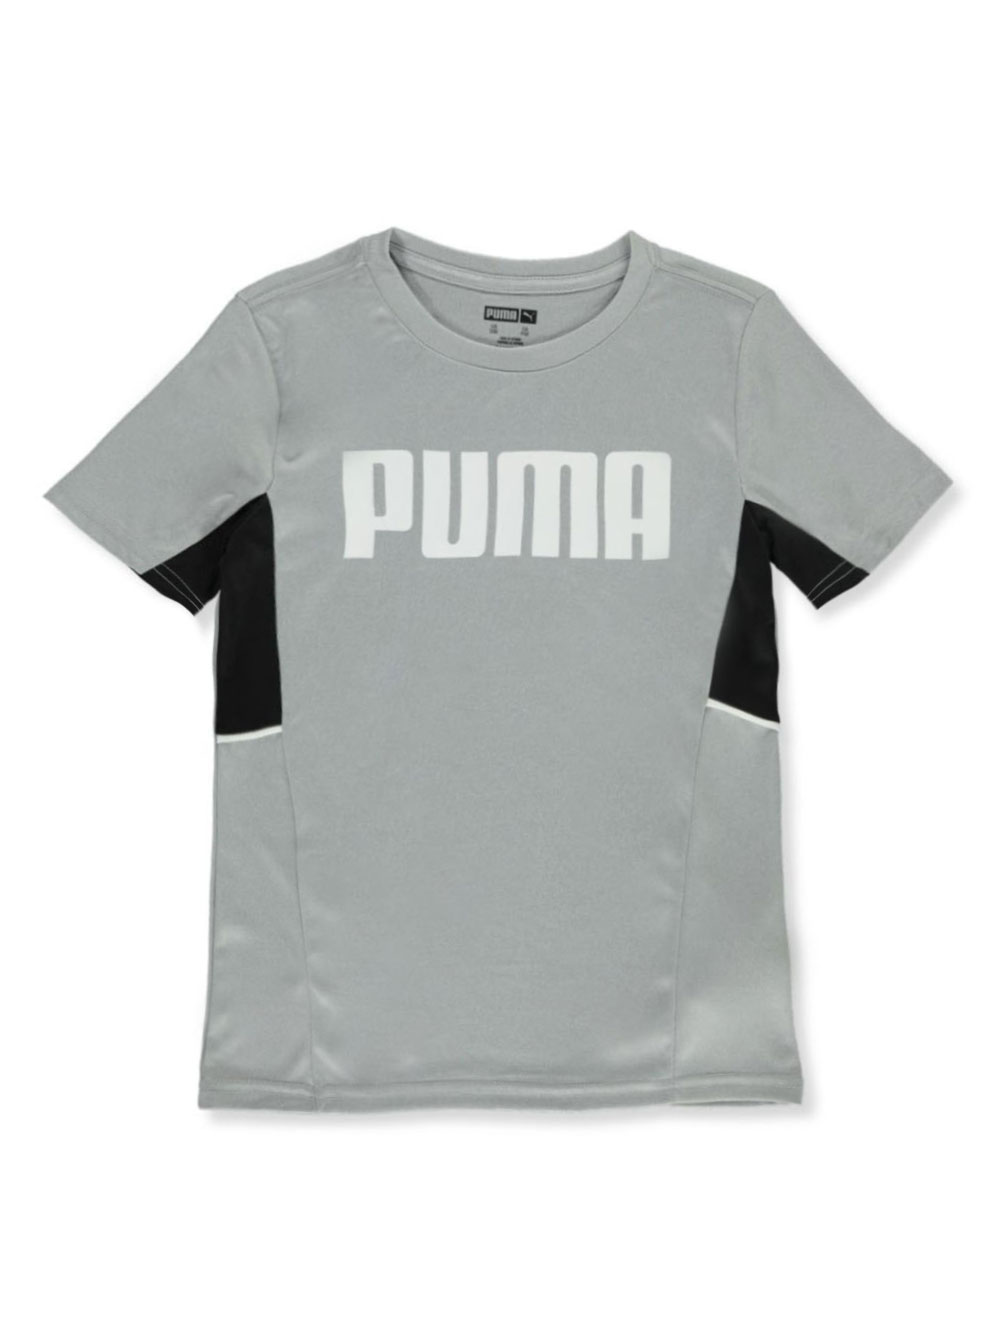 Boys Charcoal Gray T-Shirts